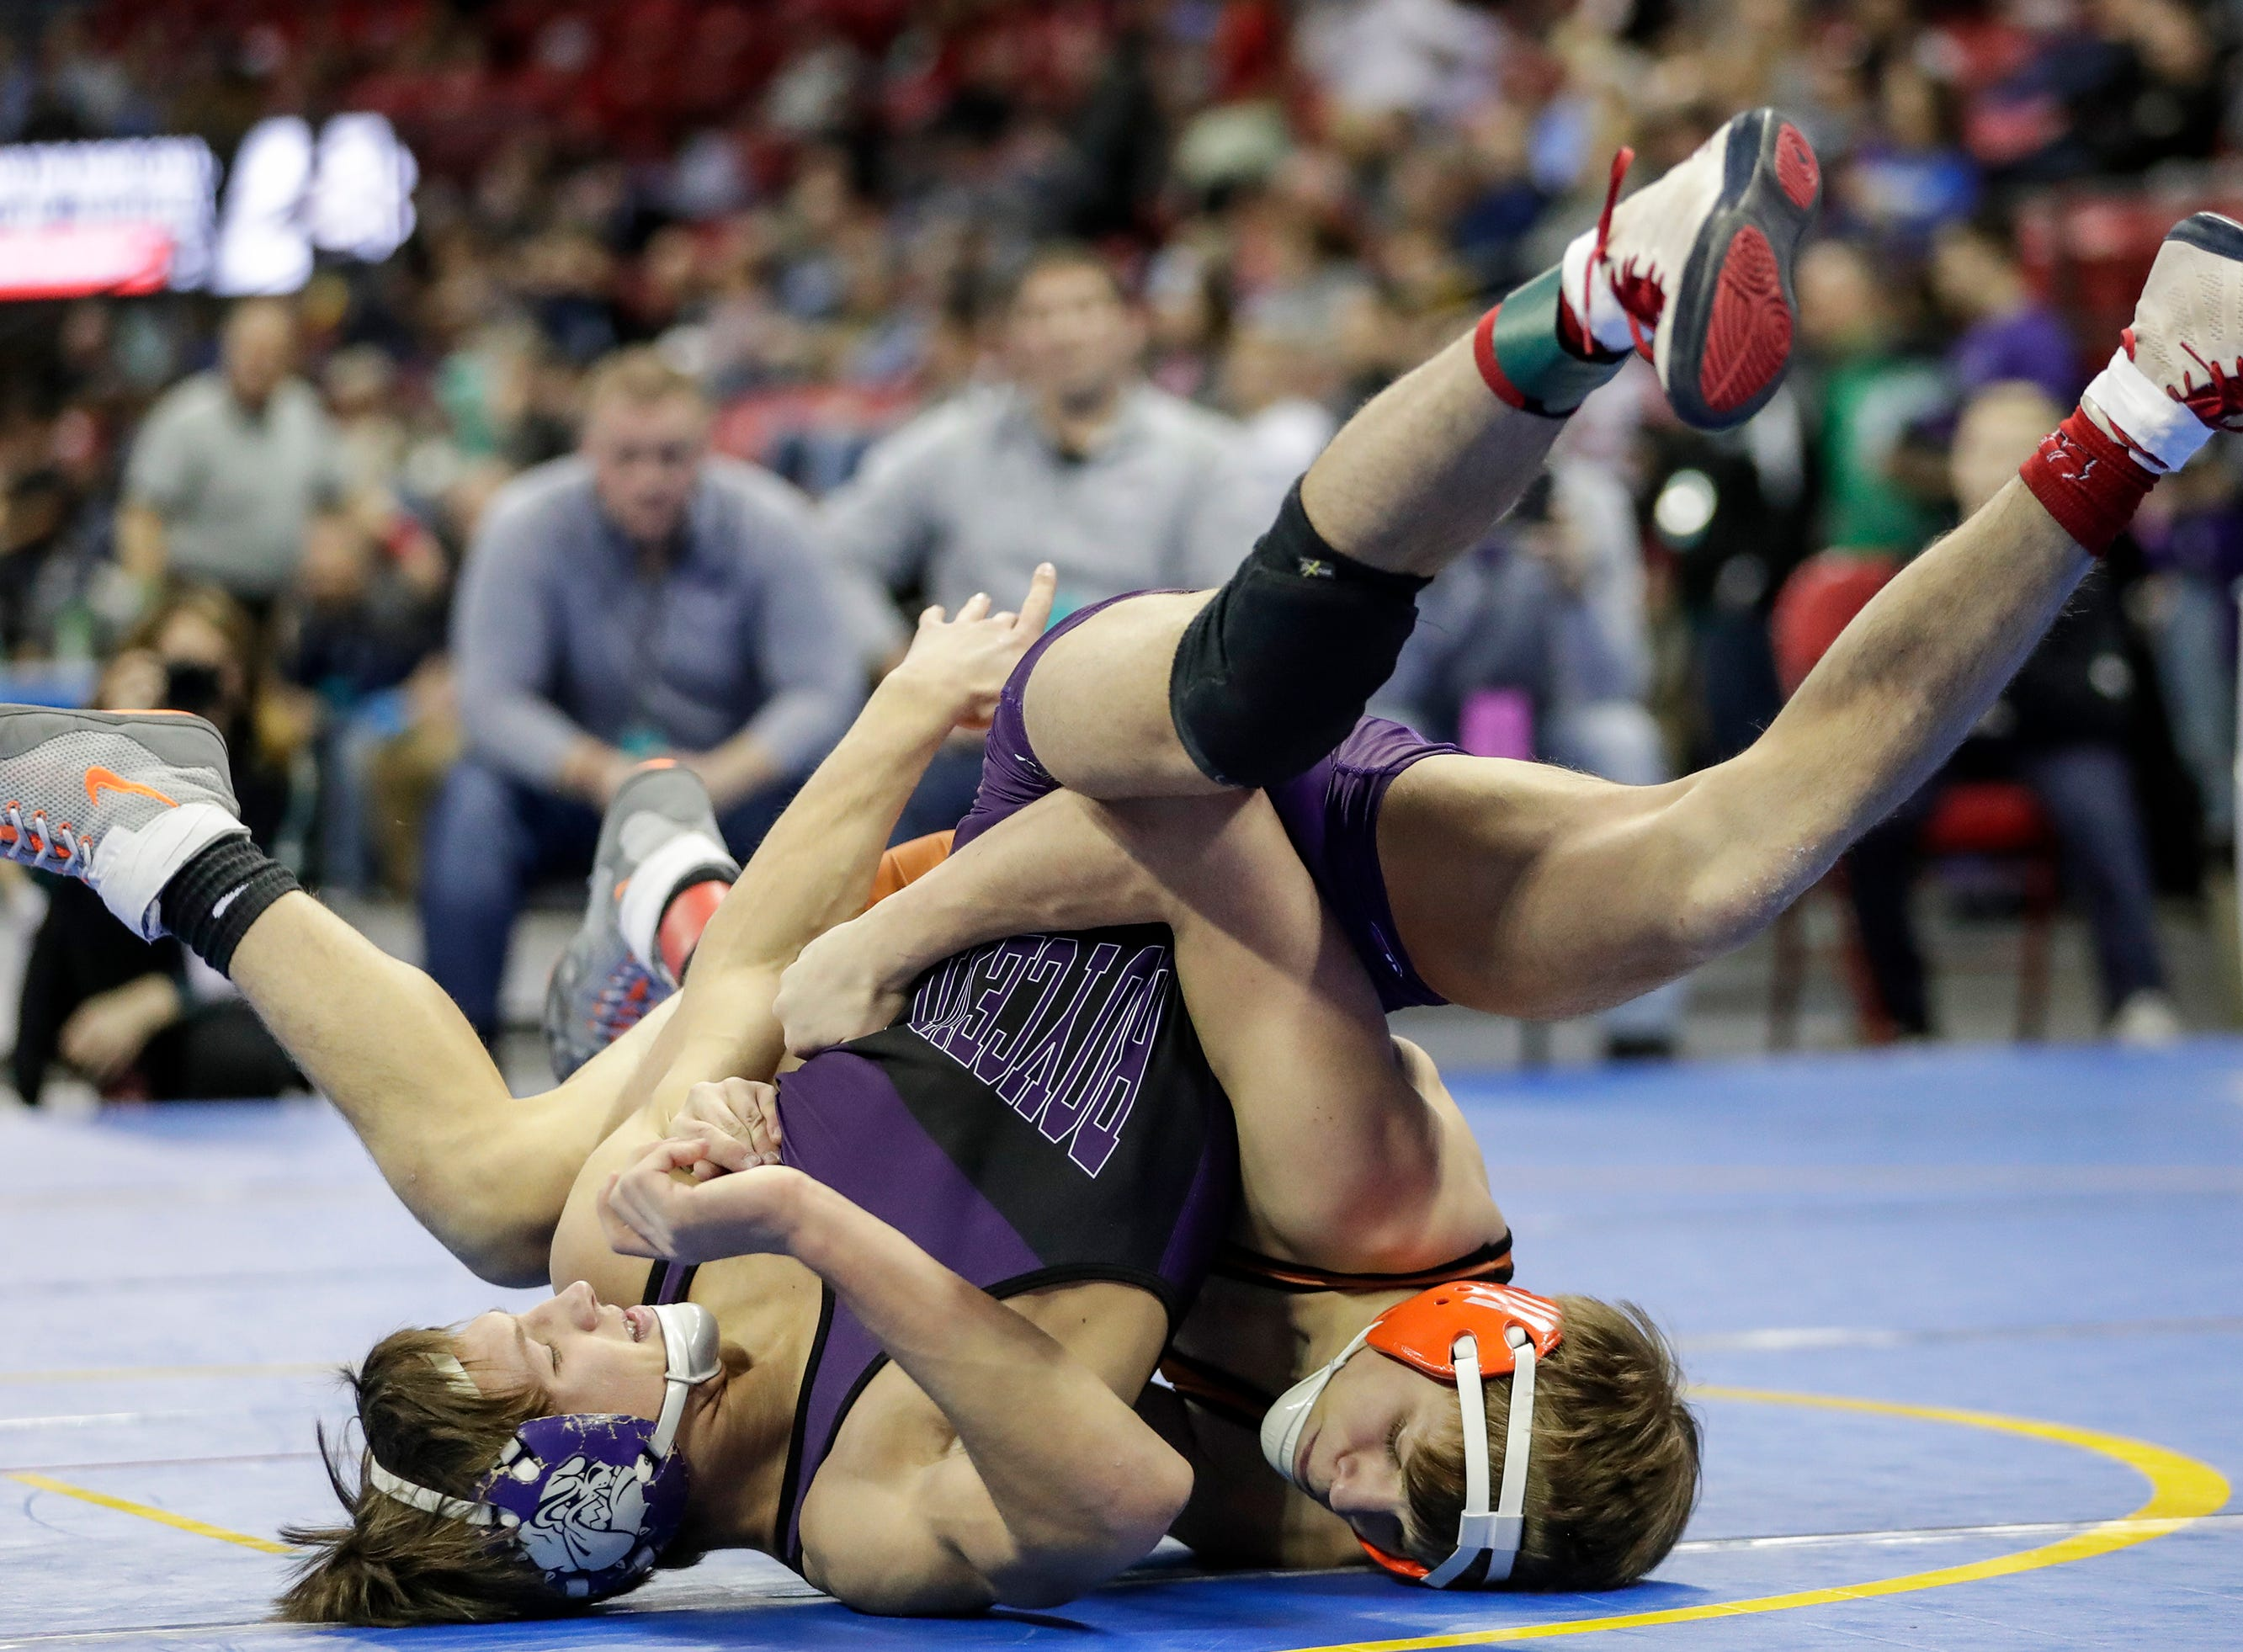 Stratford's Jacob Heiden wrestles Boyceville's Nick Goodell in a Division 3 138-pound weight class preliminary match during the WIAA state individual wrestling tournament at the Kohl Center Thursday, February 21, 2019, in Madison, Wis.